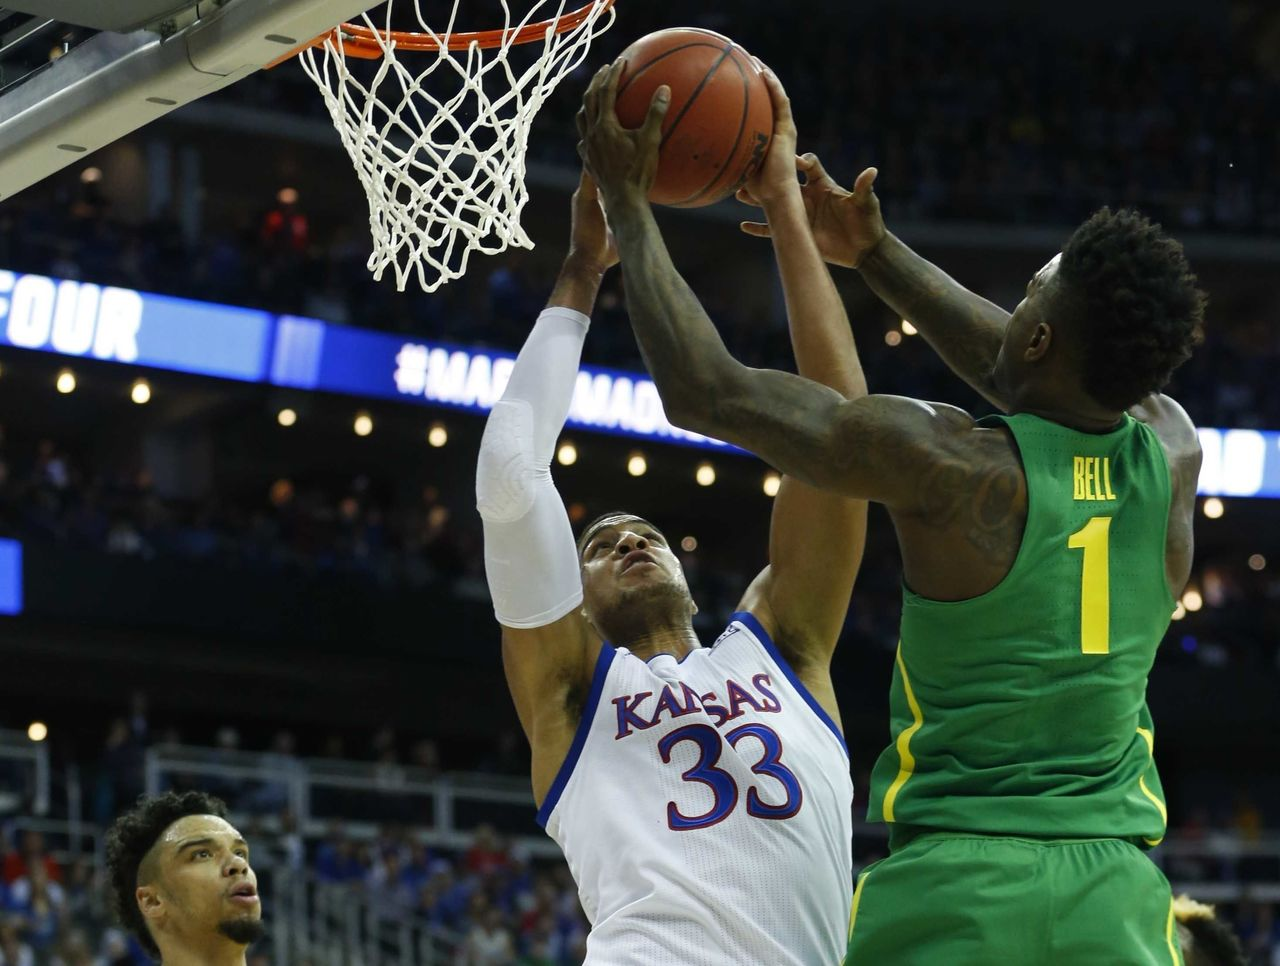 Cropped 2017 03 26t010427z 977433462 nocid rtrmadp 3 ncaa basketball ncaa tournament midwest regional kansas vs oregon